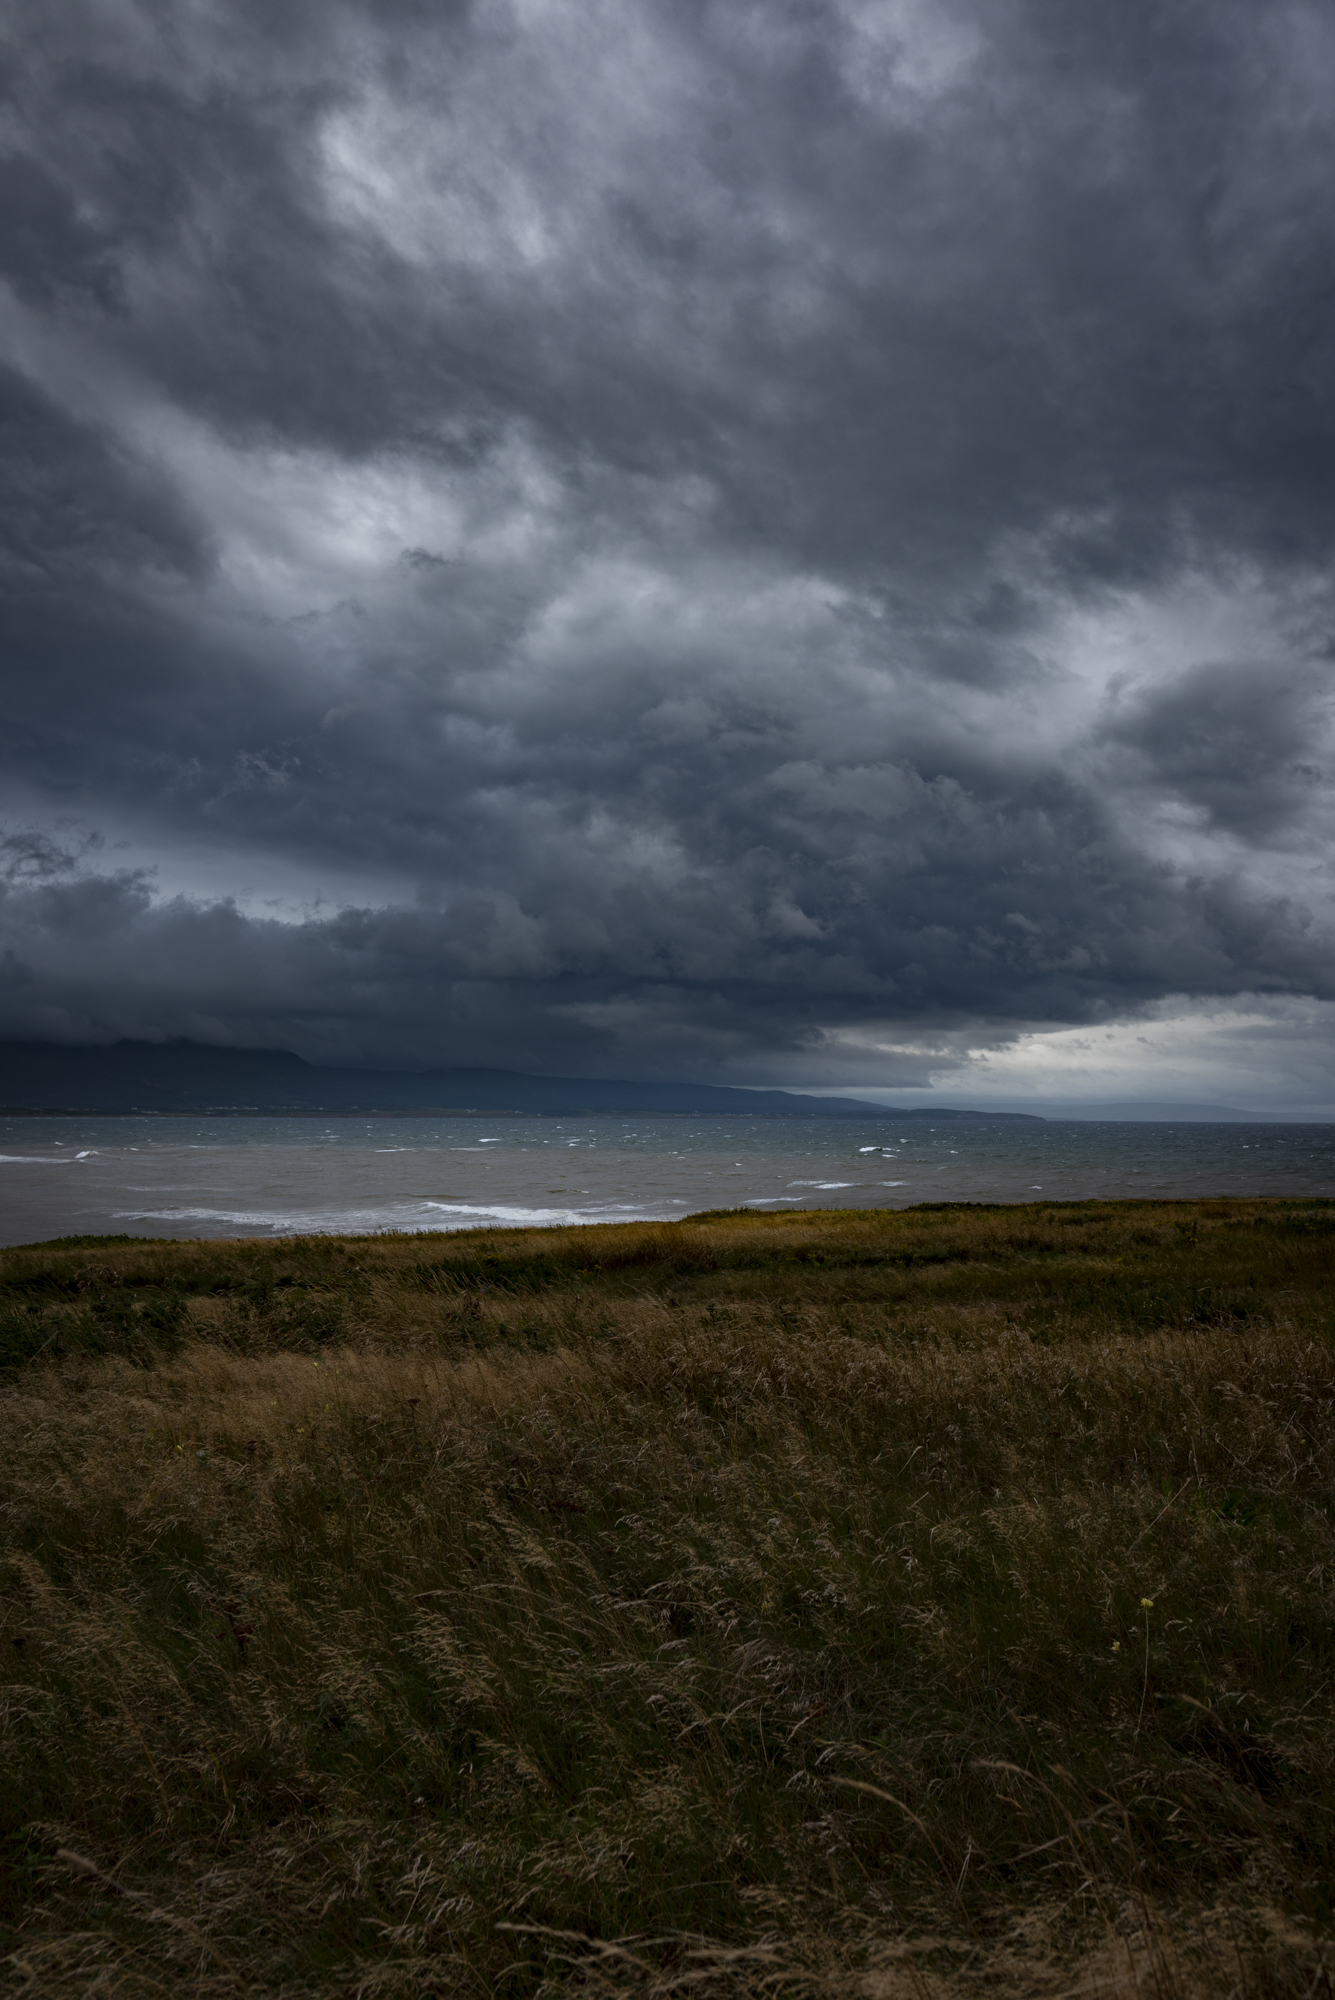 Storm clouds - Cheticamp Island